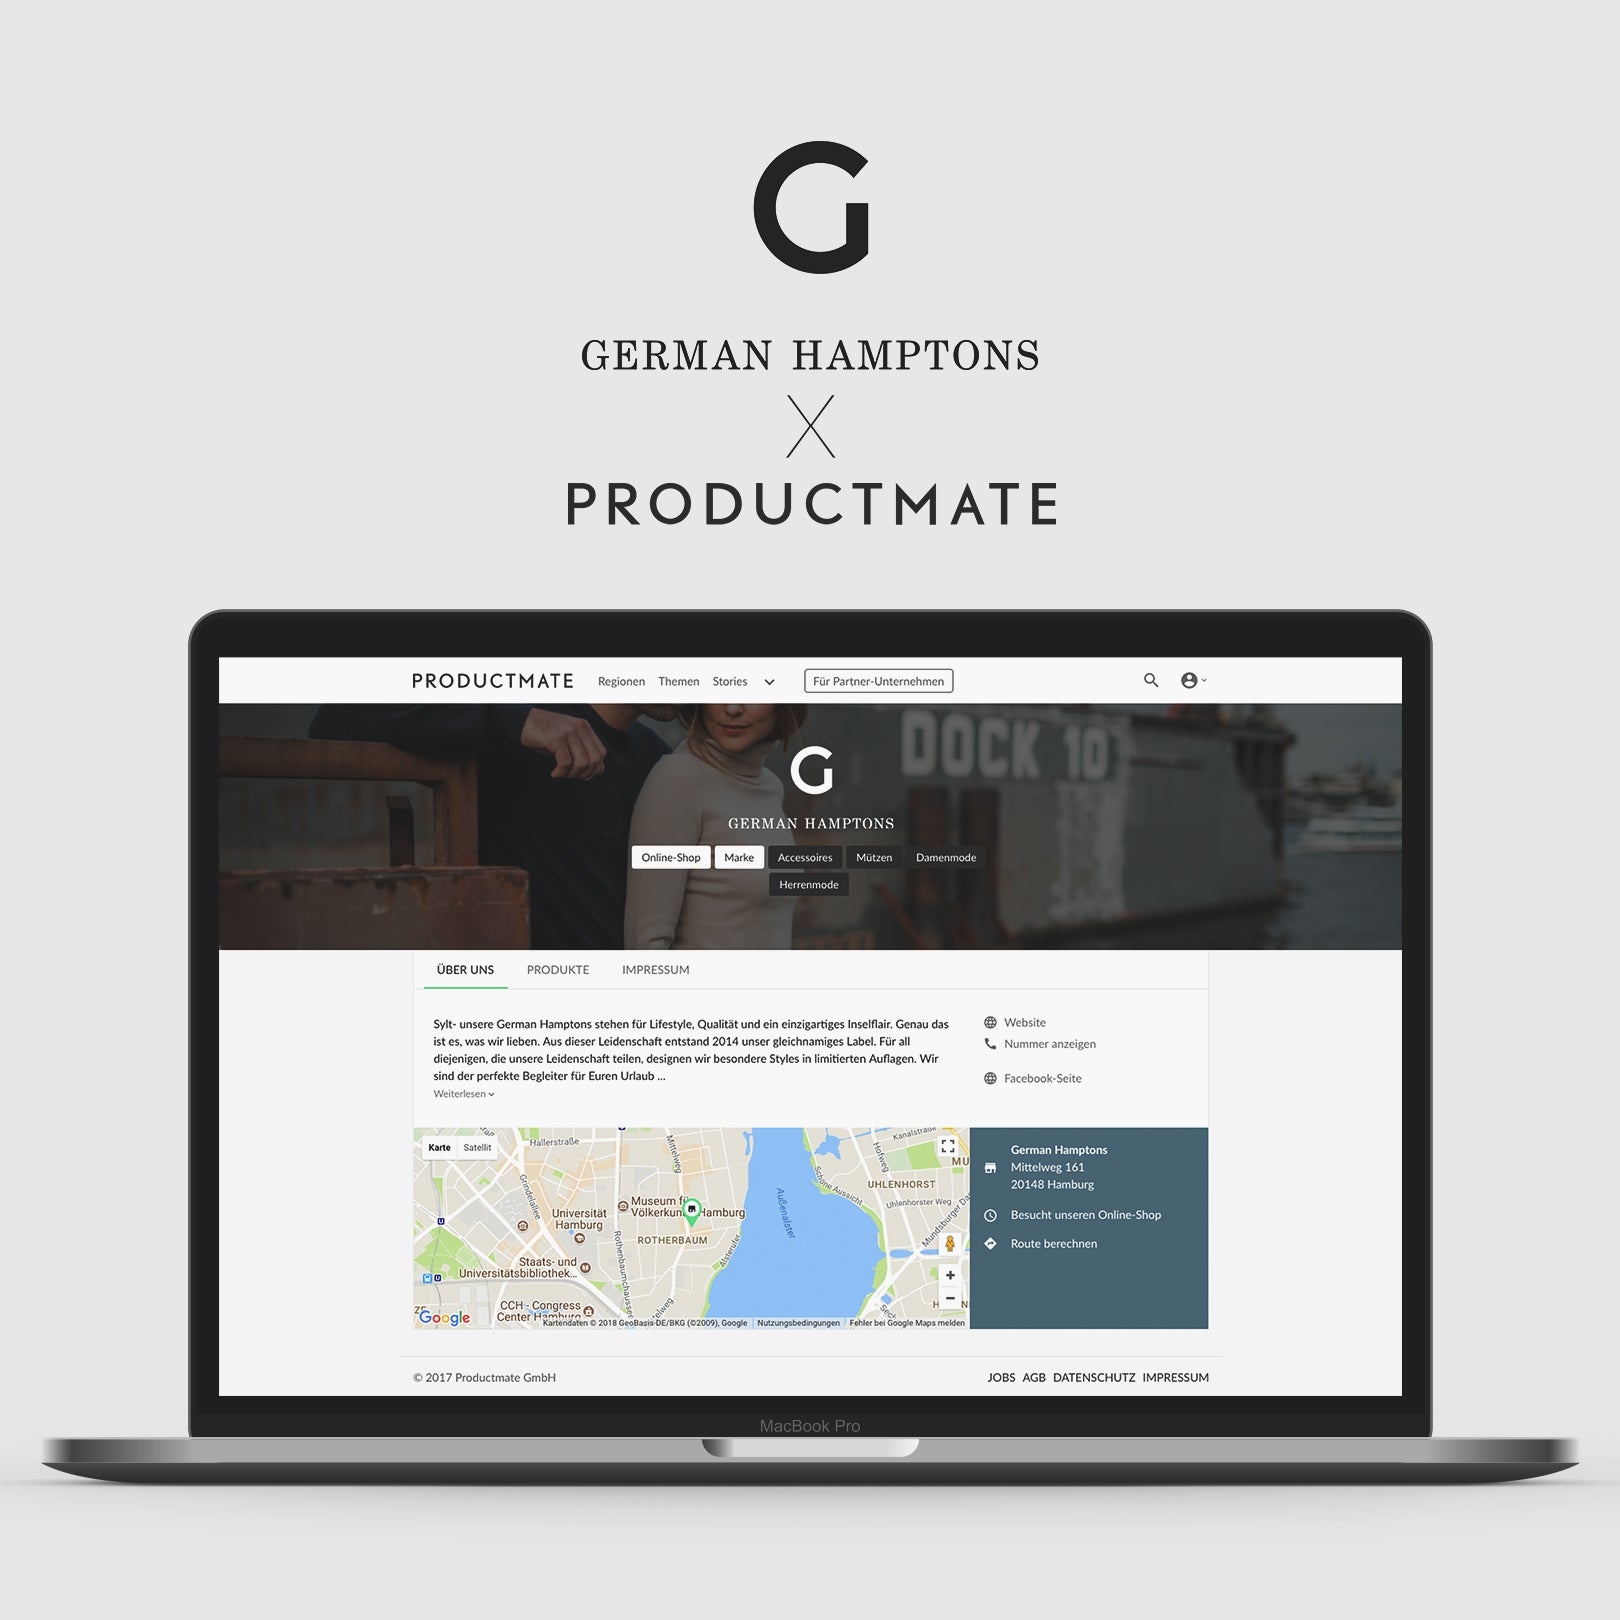 German Hamptons x Productmate